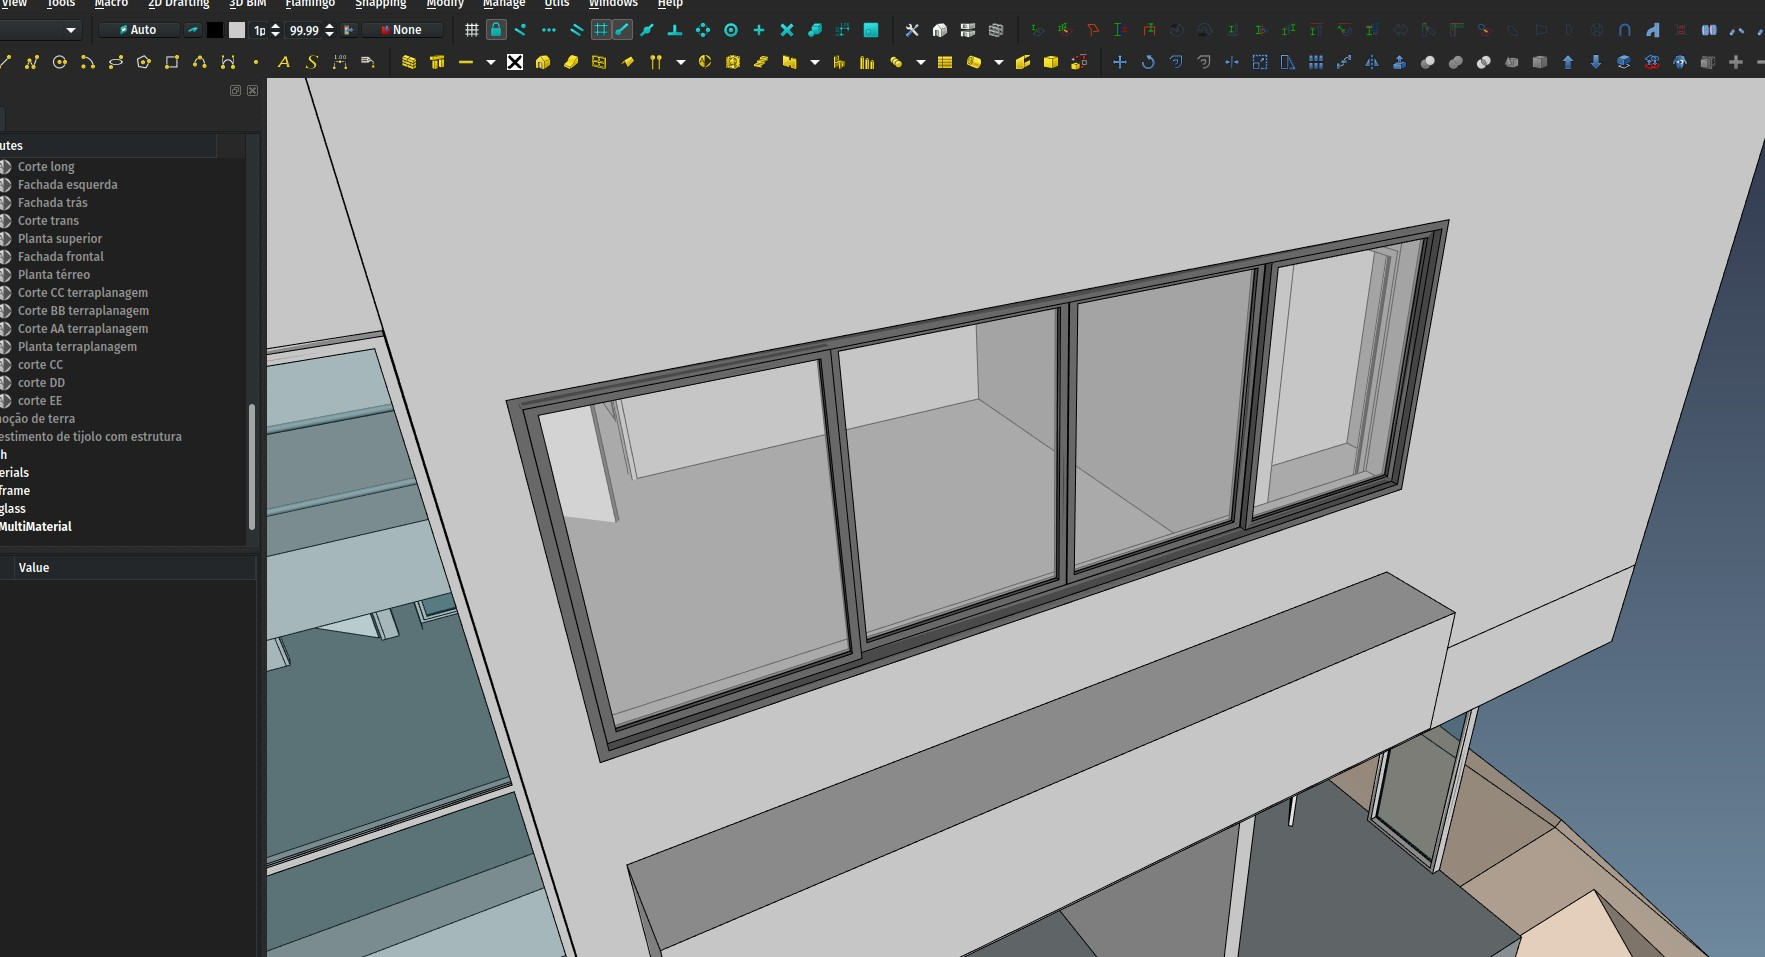 FreeCAD BIM development news - April 2018 - Yorik's Guestblog